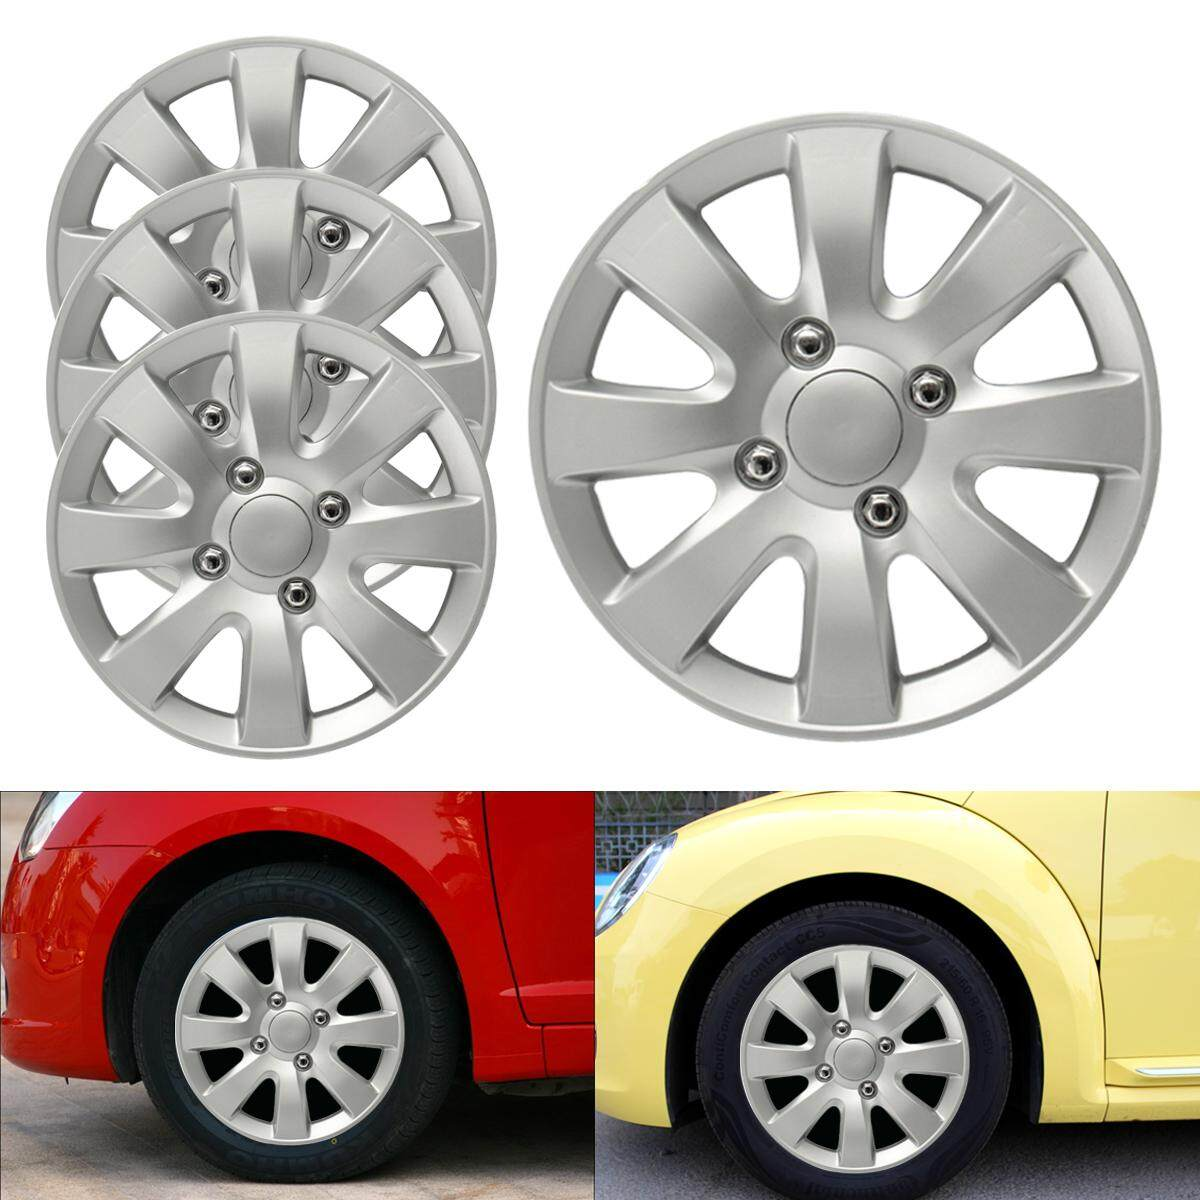 Set Of 4 X 15 Inch Alloy Look Car Wheel Trims/covers/silver 15 Hub Caps By Audew.